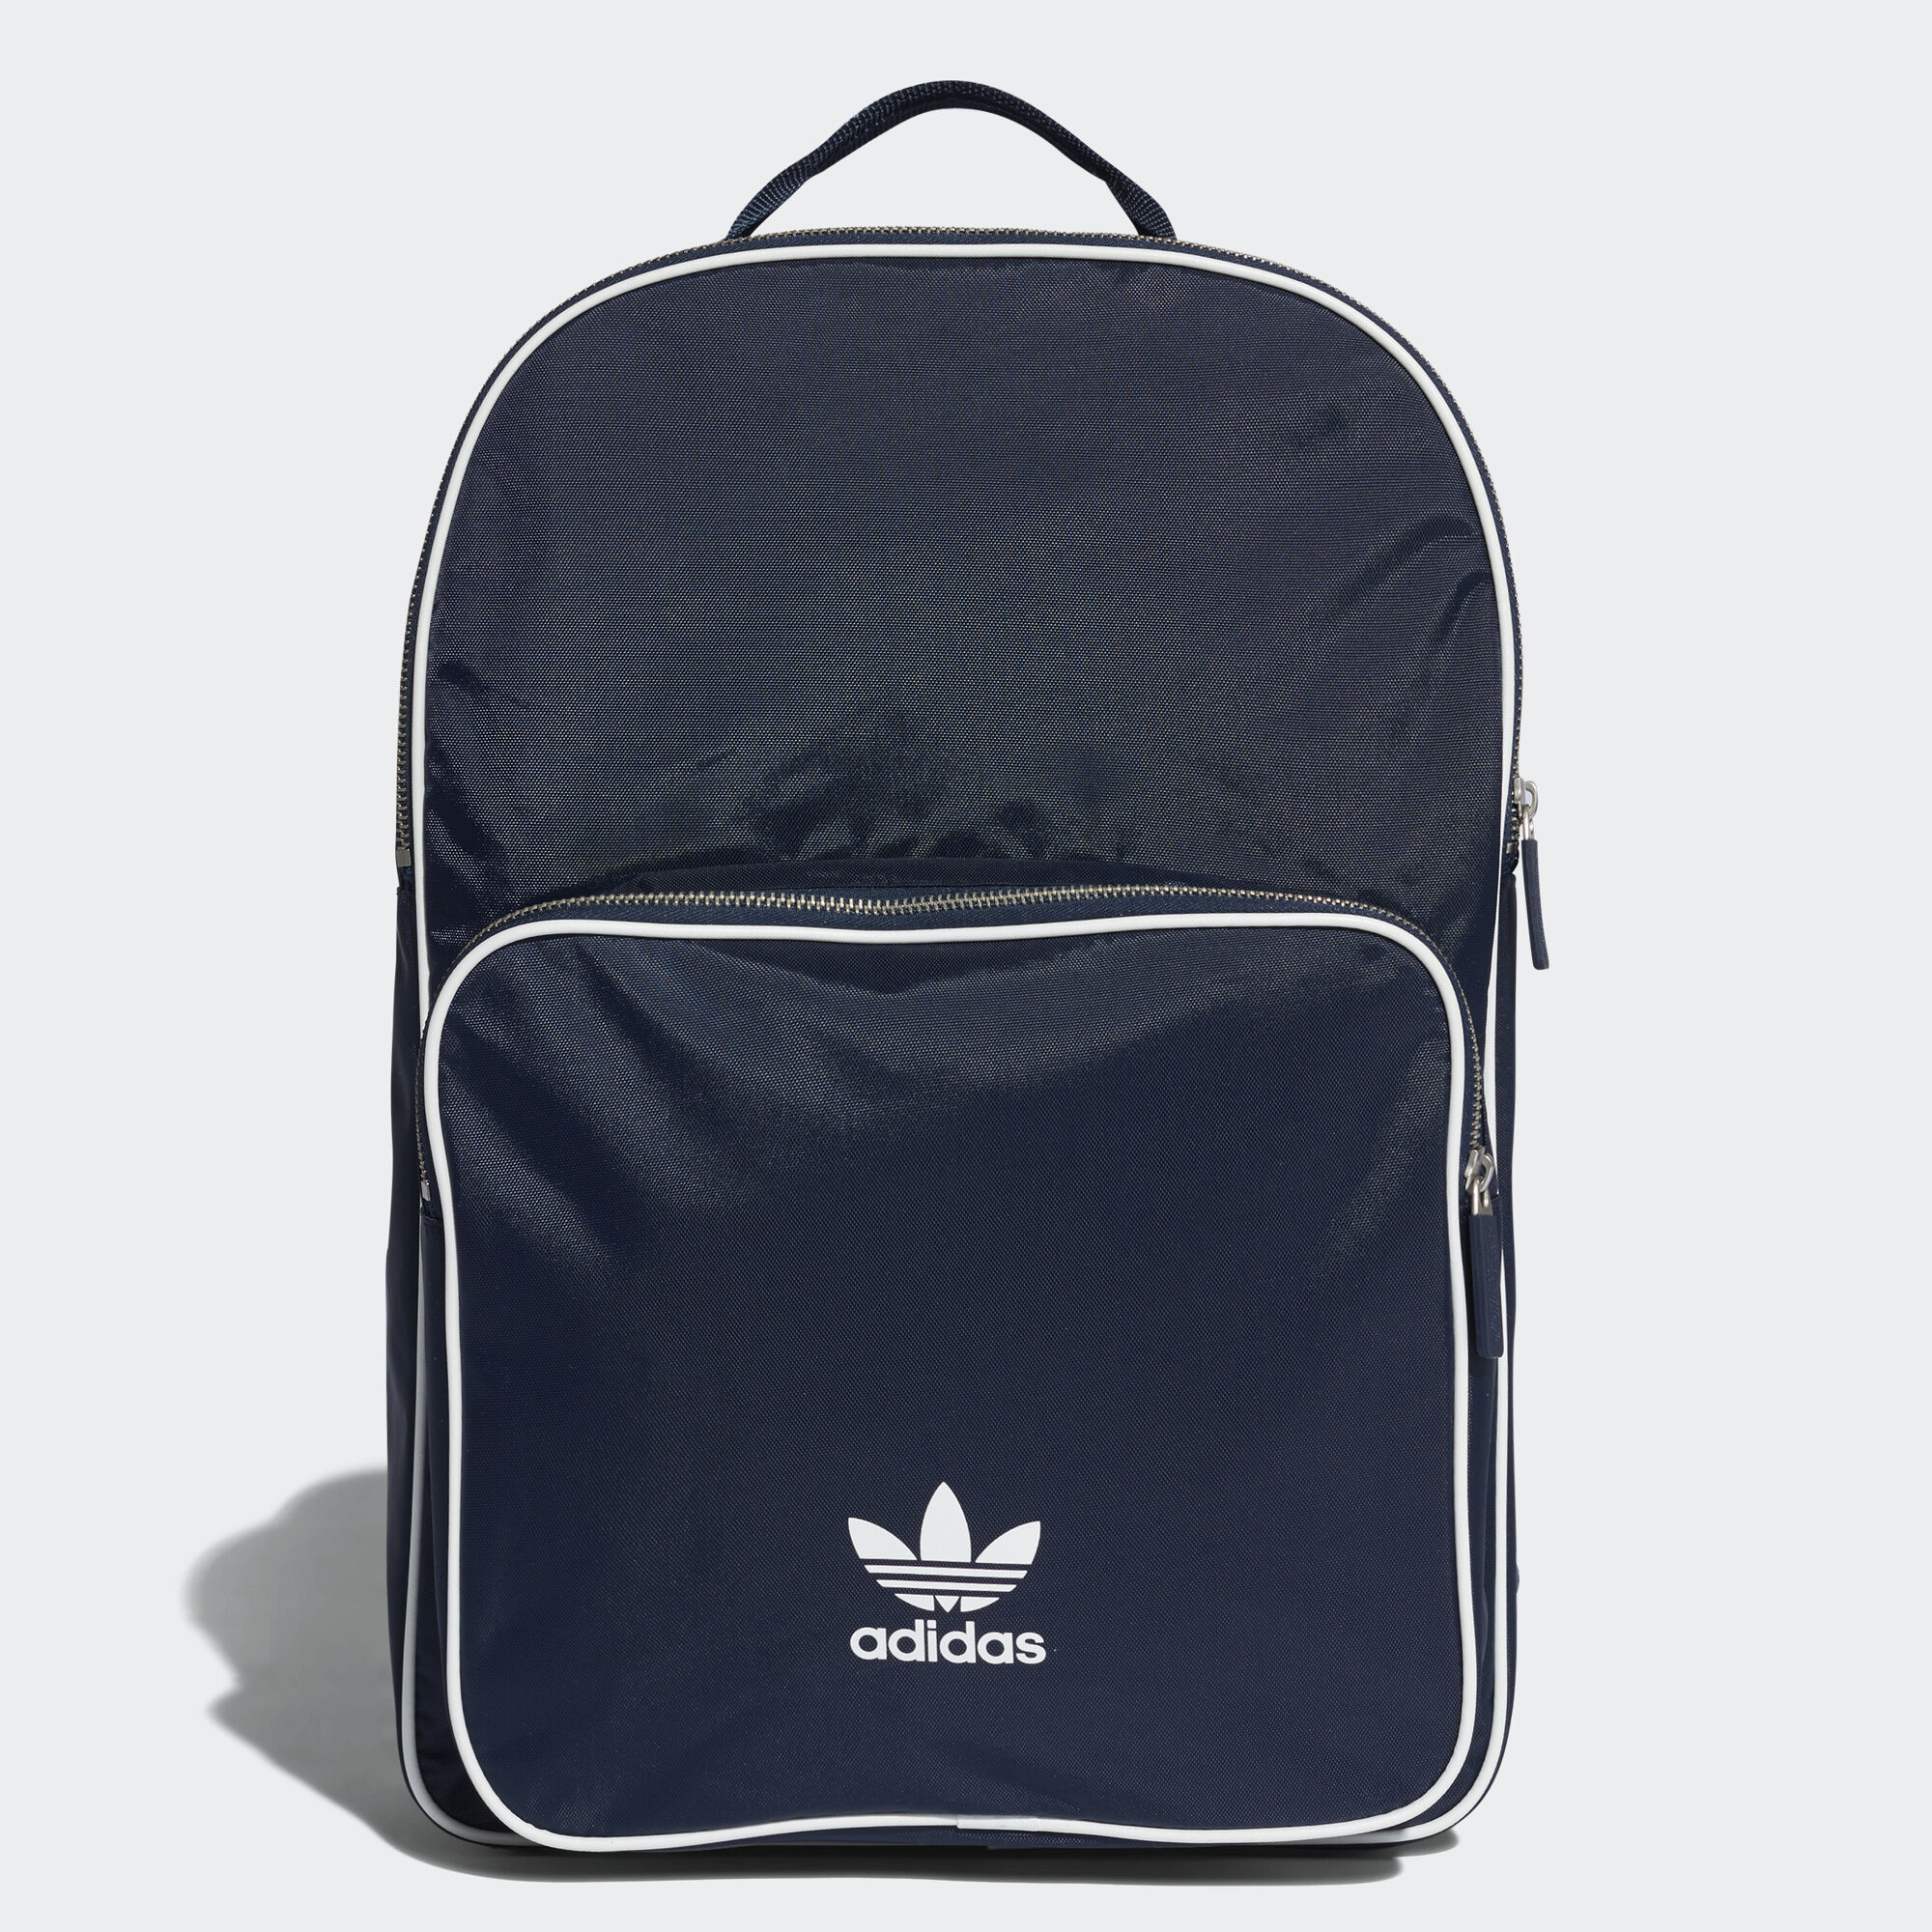 9c29cd2374a2 adidas - Classic Backpack Collegiate Navy CW0633